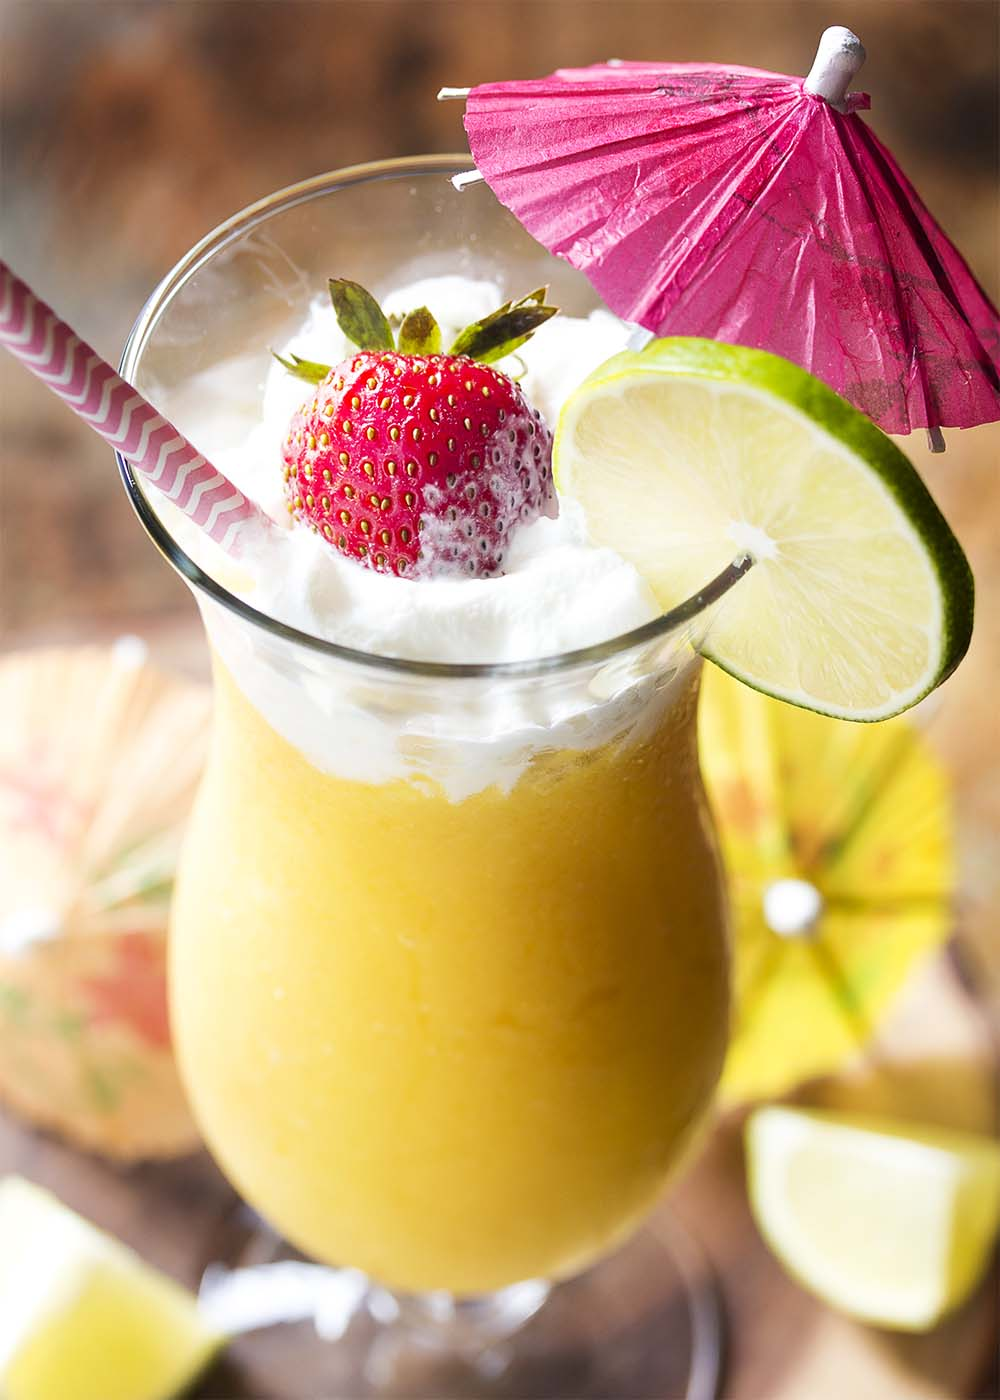 Close up of a frozen mango daiquiri with whipped cream on top and a straw and umbrella on the glass.